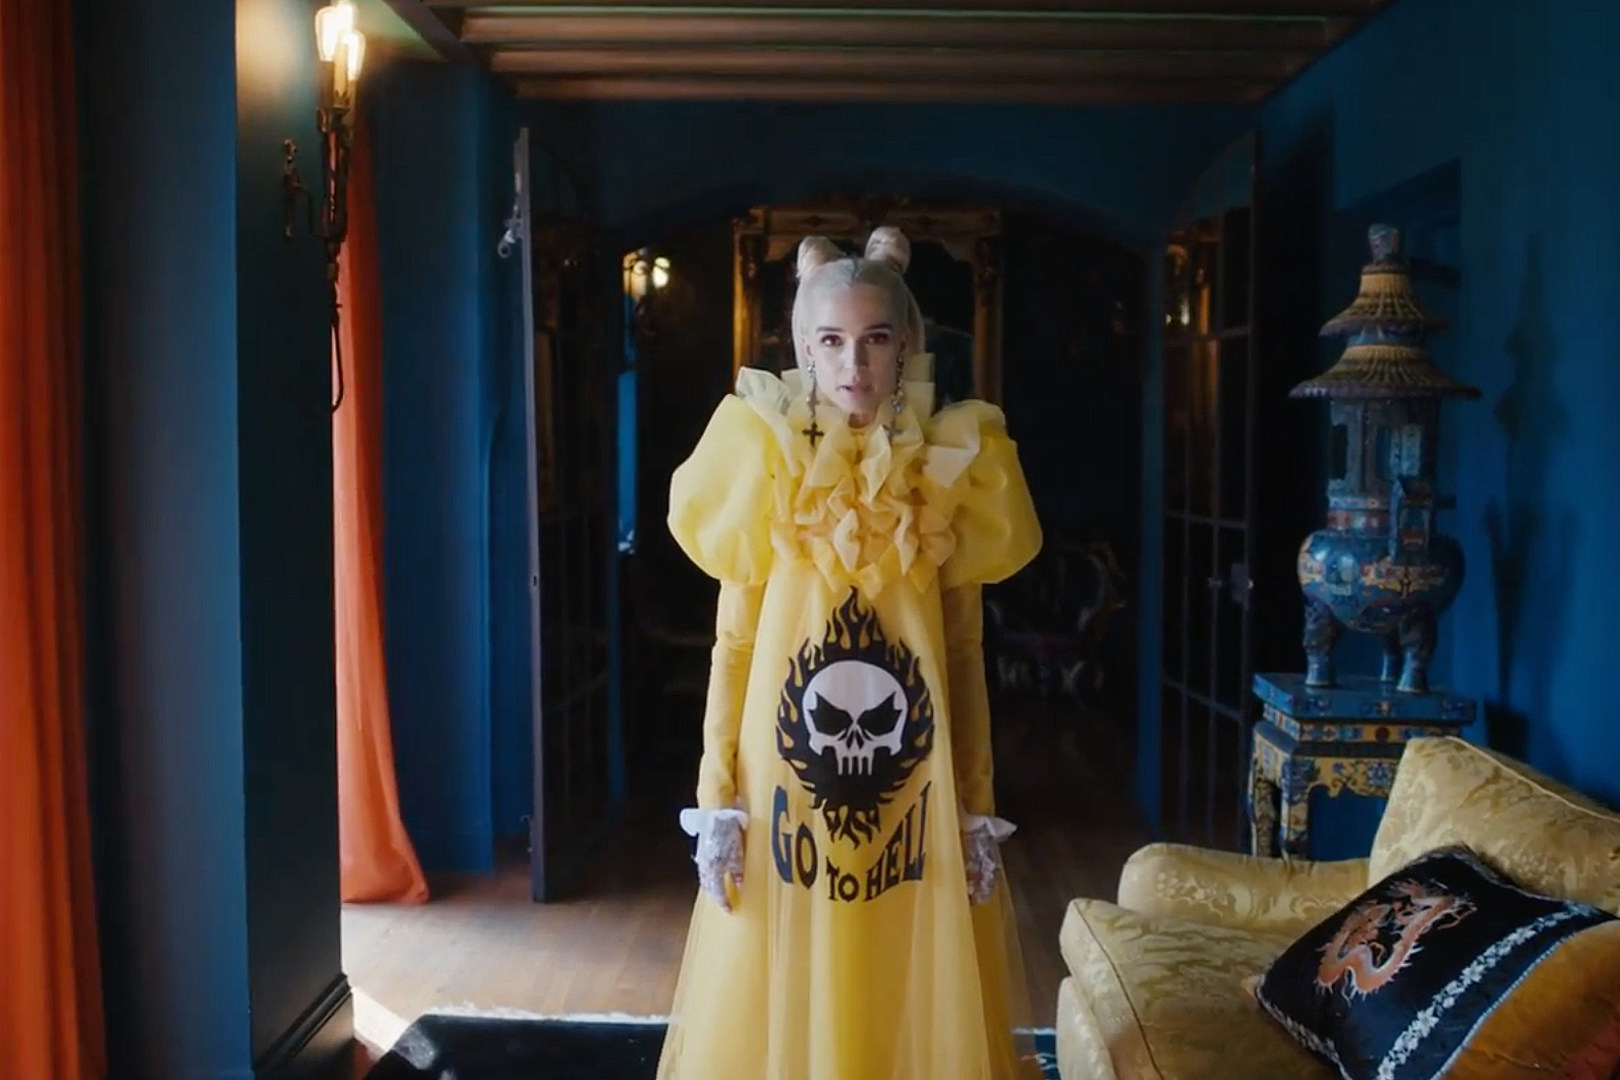 Poppy in the Scary Mask video